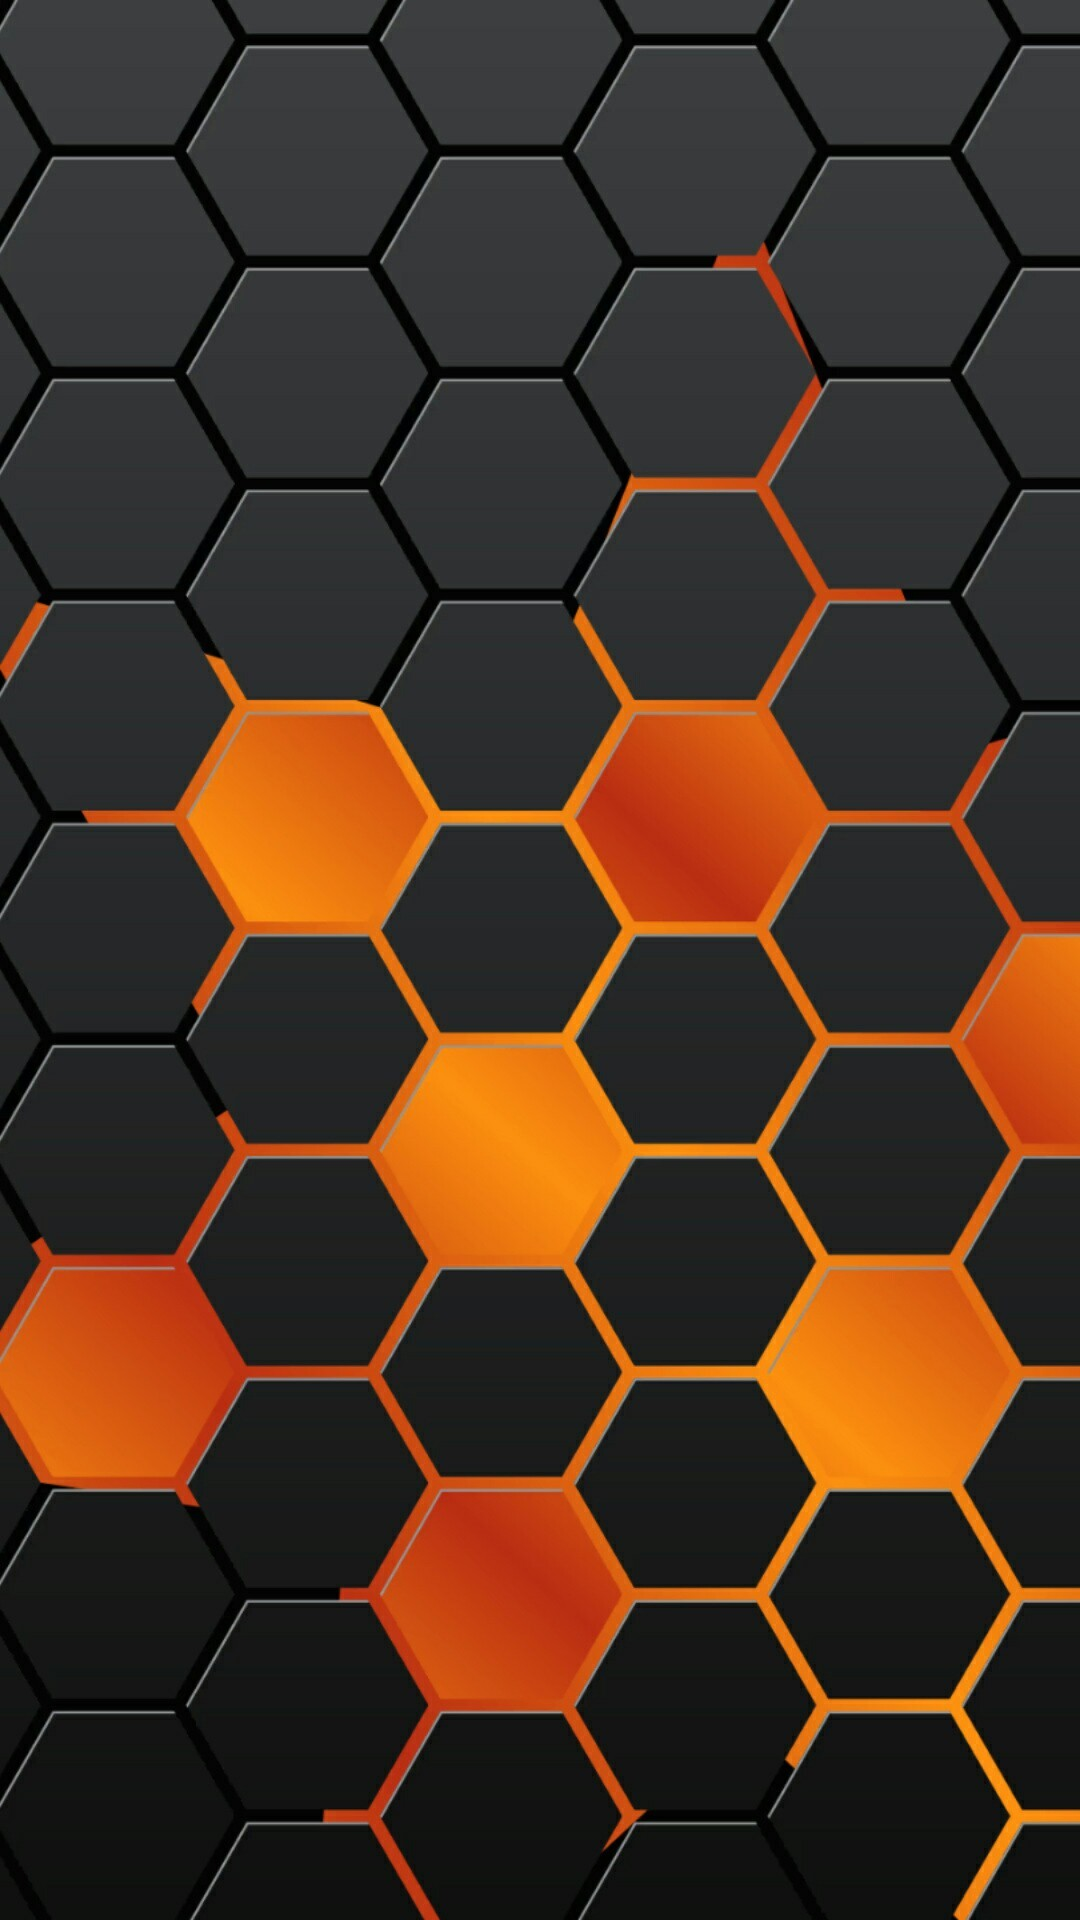 Orange and Black Wallpaper 75 images 1080x1920